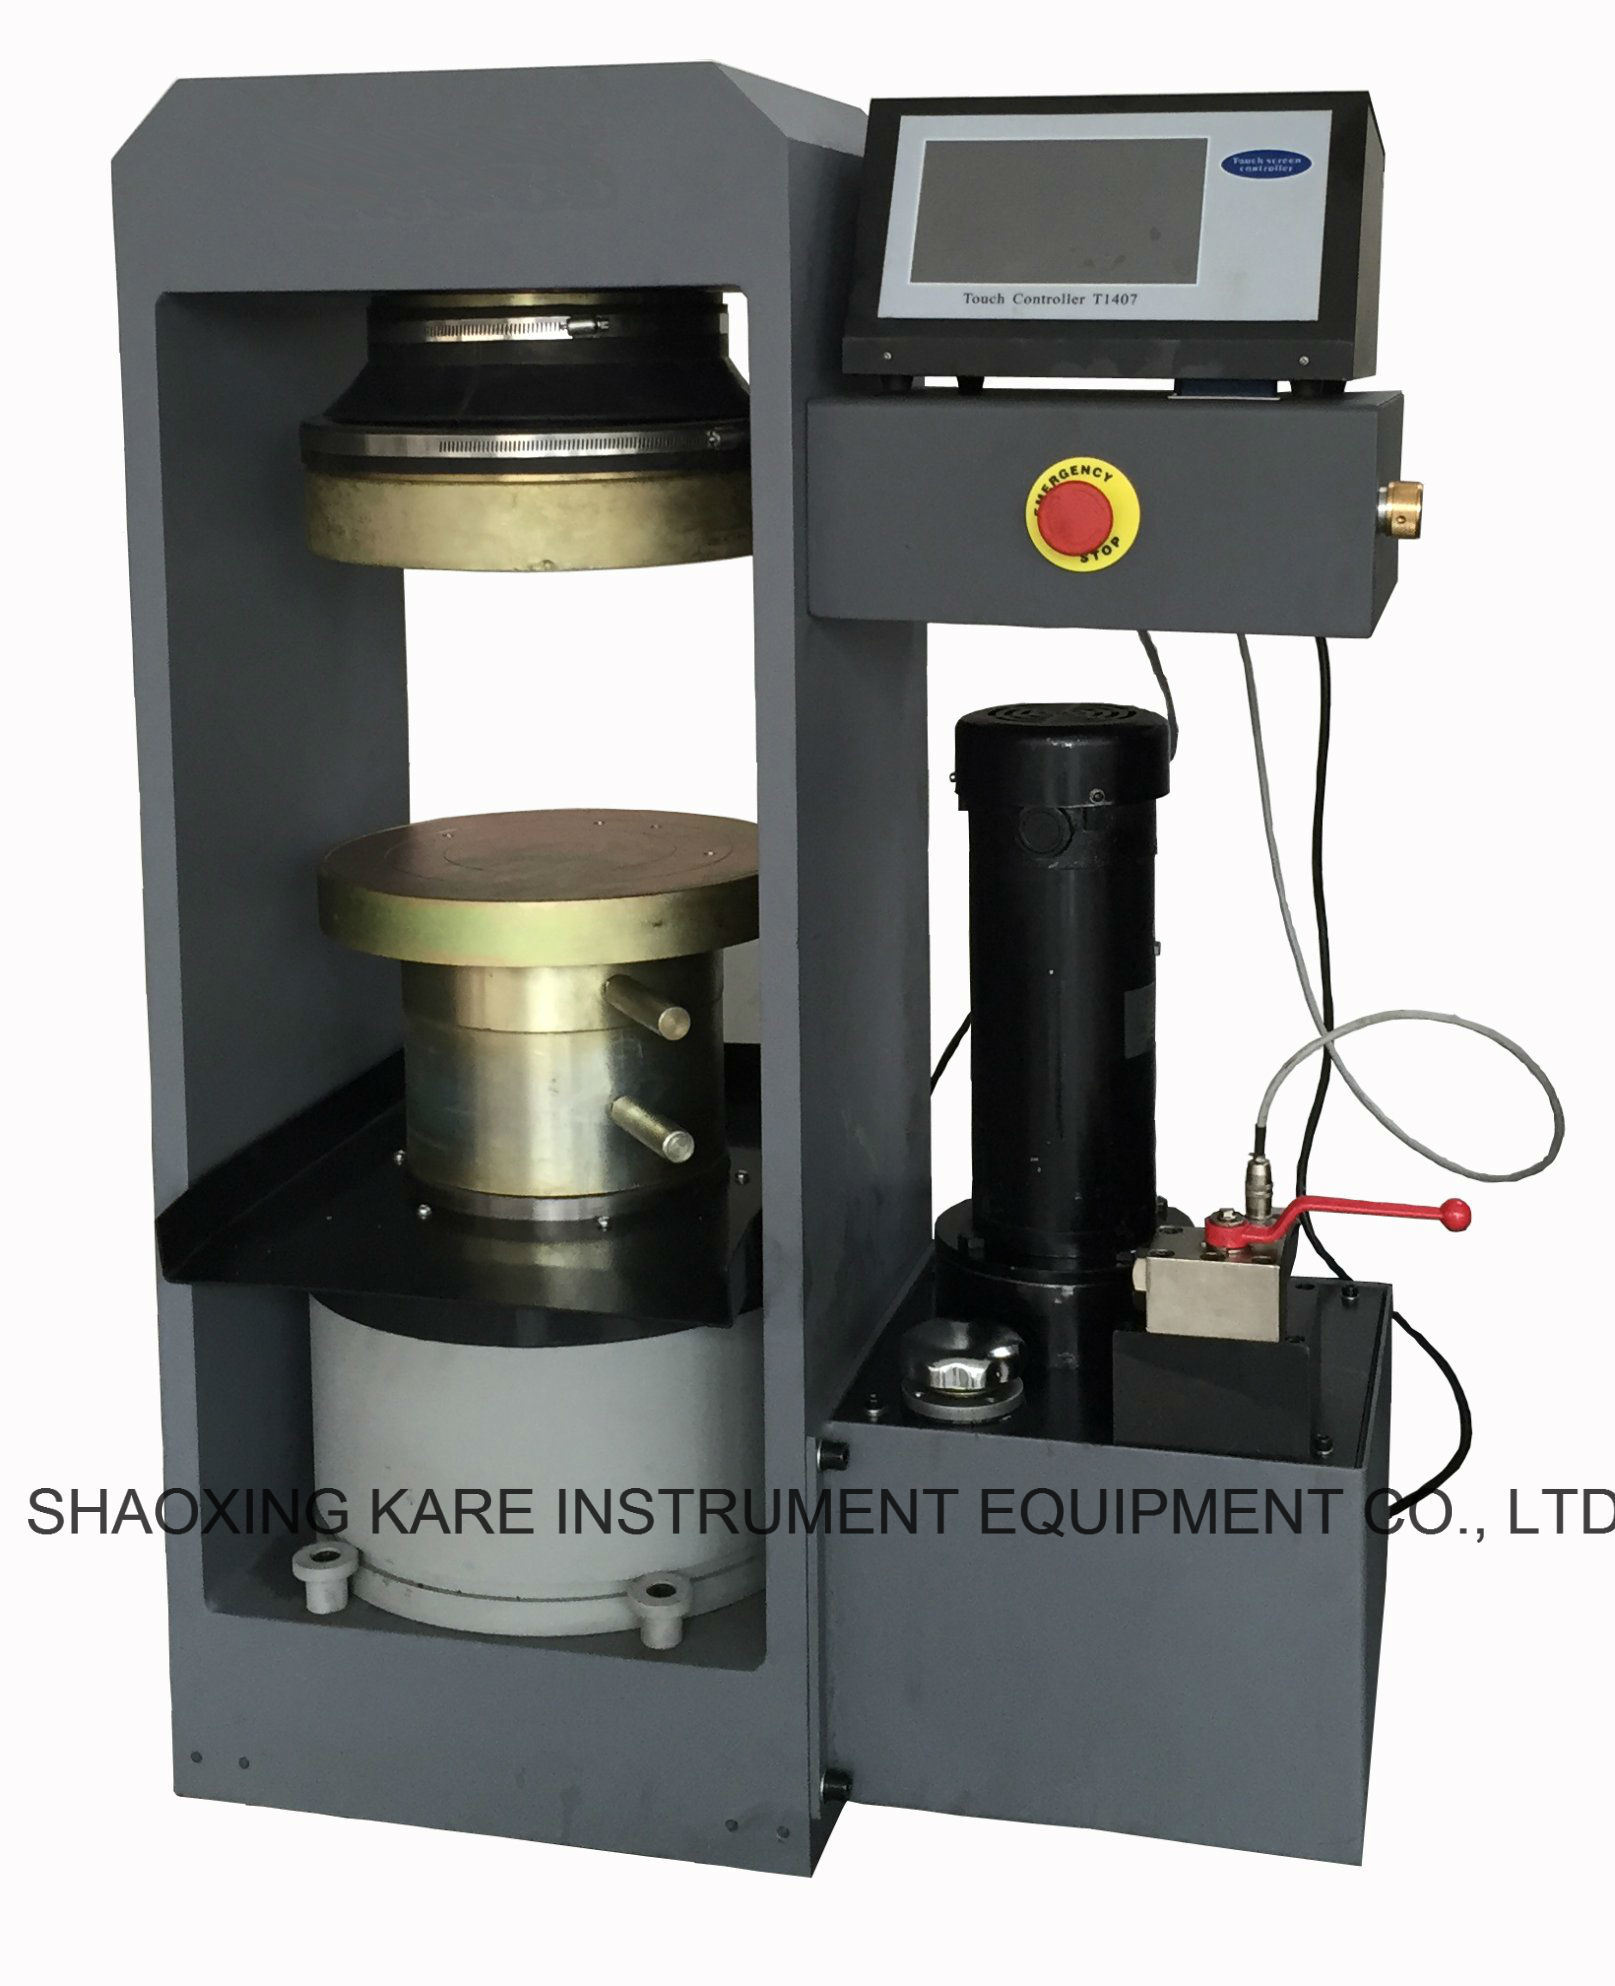 LCD Display Concrete Compression Testing Machine (CXYE-2000S)